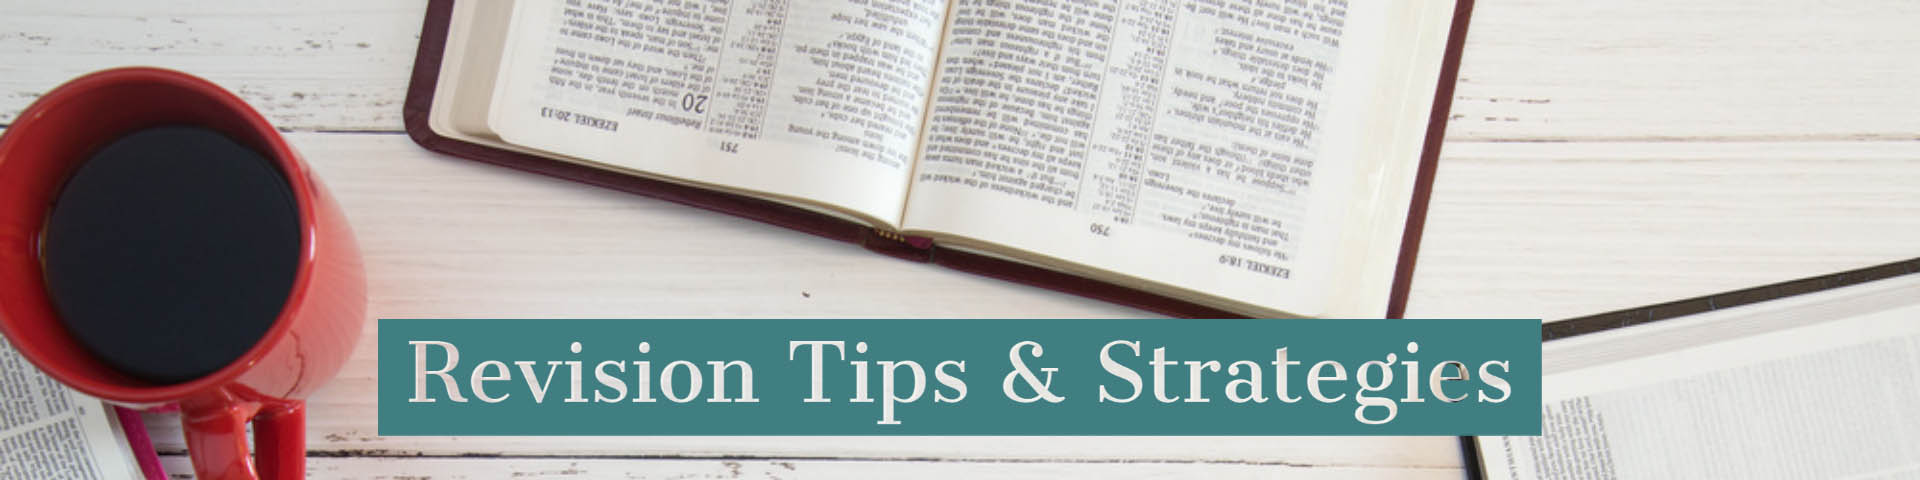 Revision Tips Banner